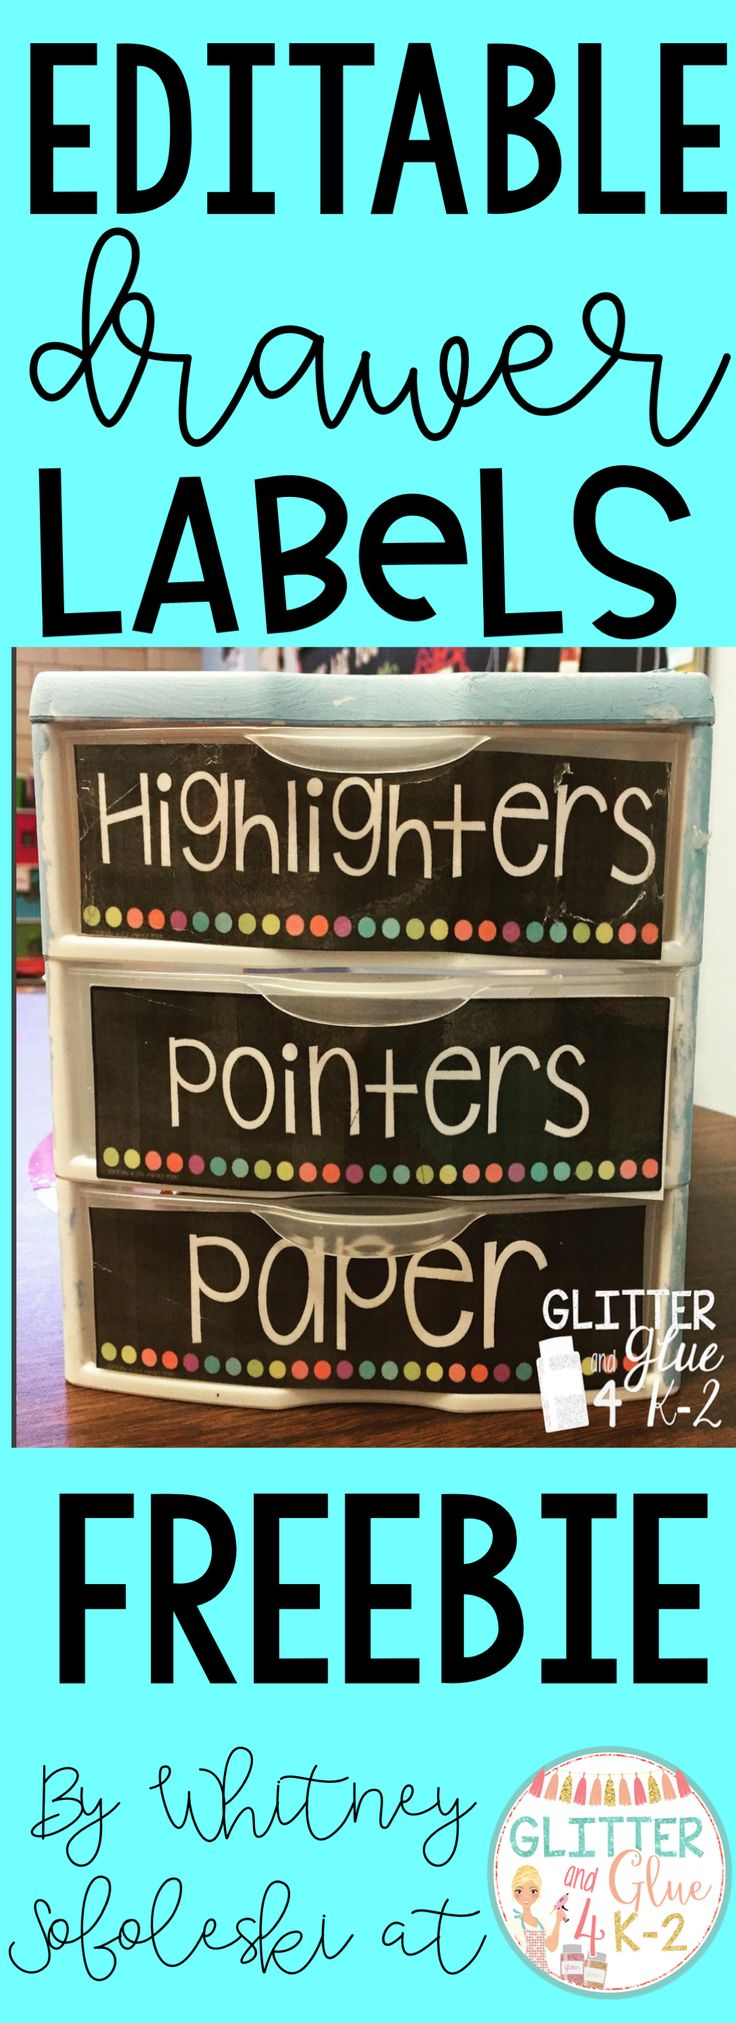 Jazz up and organize your writing center with these fun labels for your drawers! Organize more of your supplies by using the editable labels! Keywords: classroom organization, pencil management, back to school, classroom, teachers, teachers.